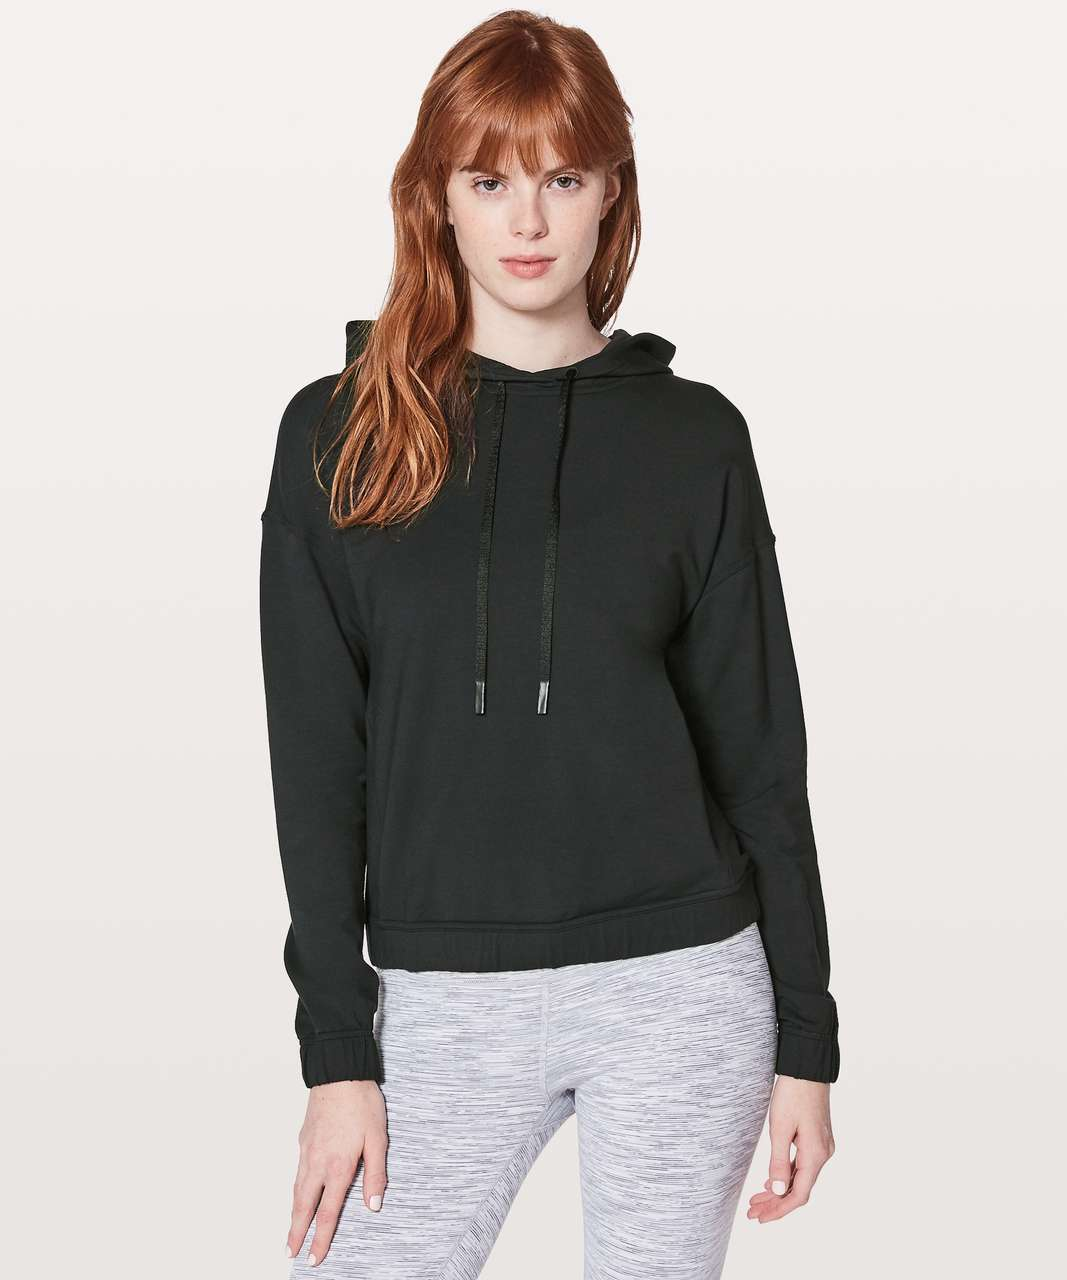 Lululemon Twisted & Tucked Pullover - Black